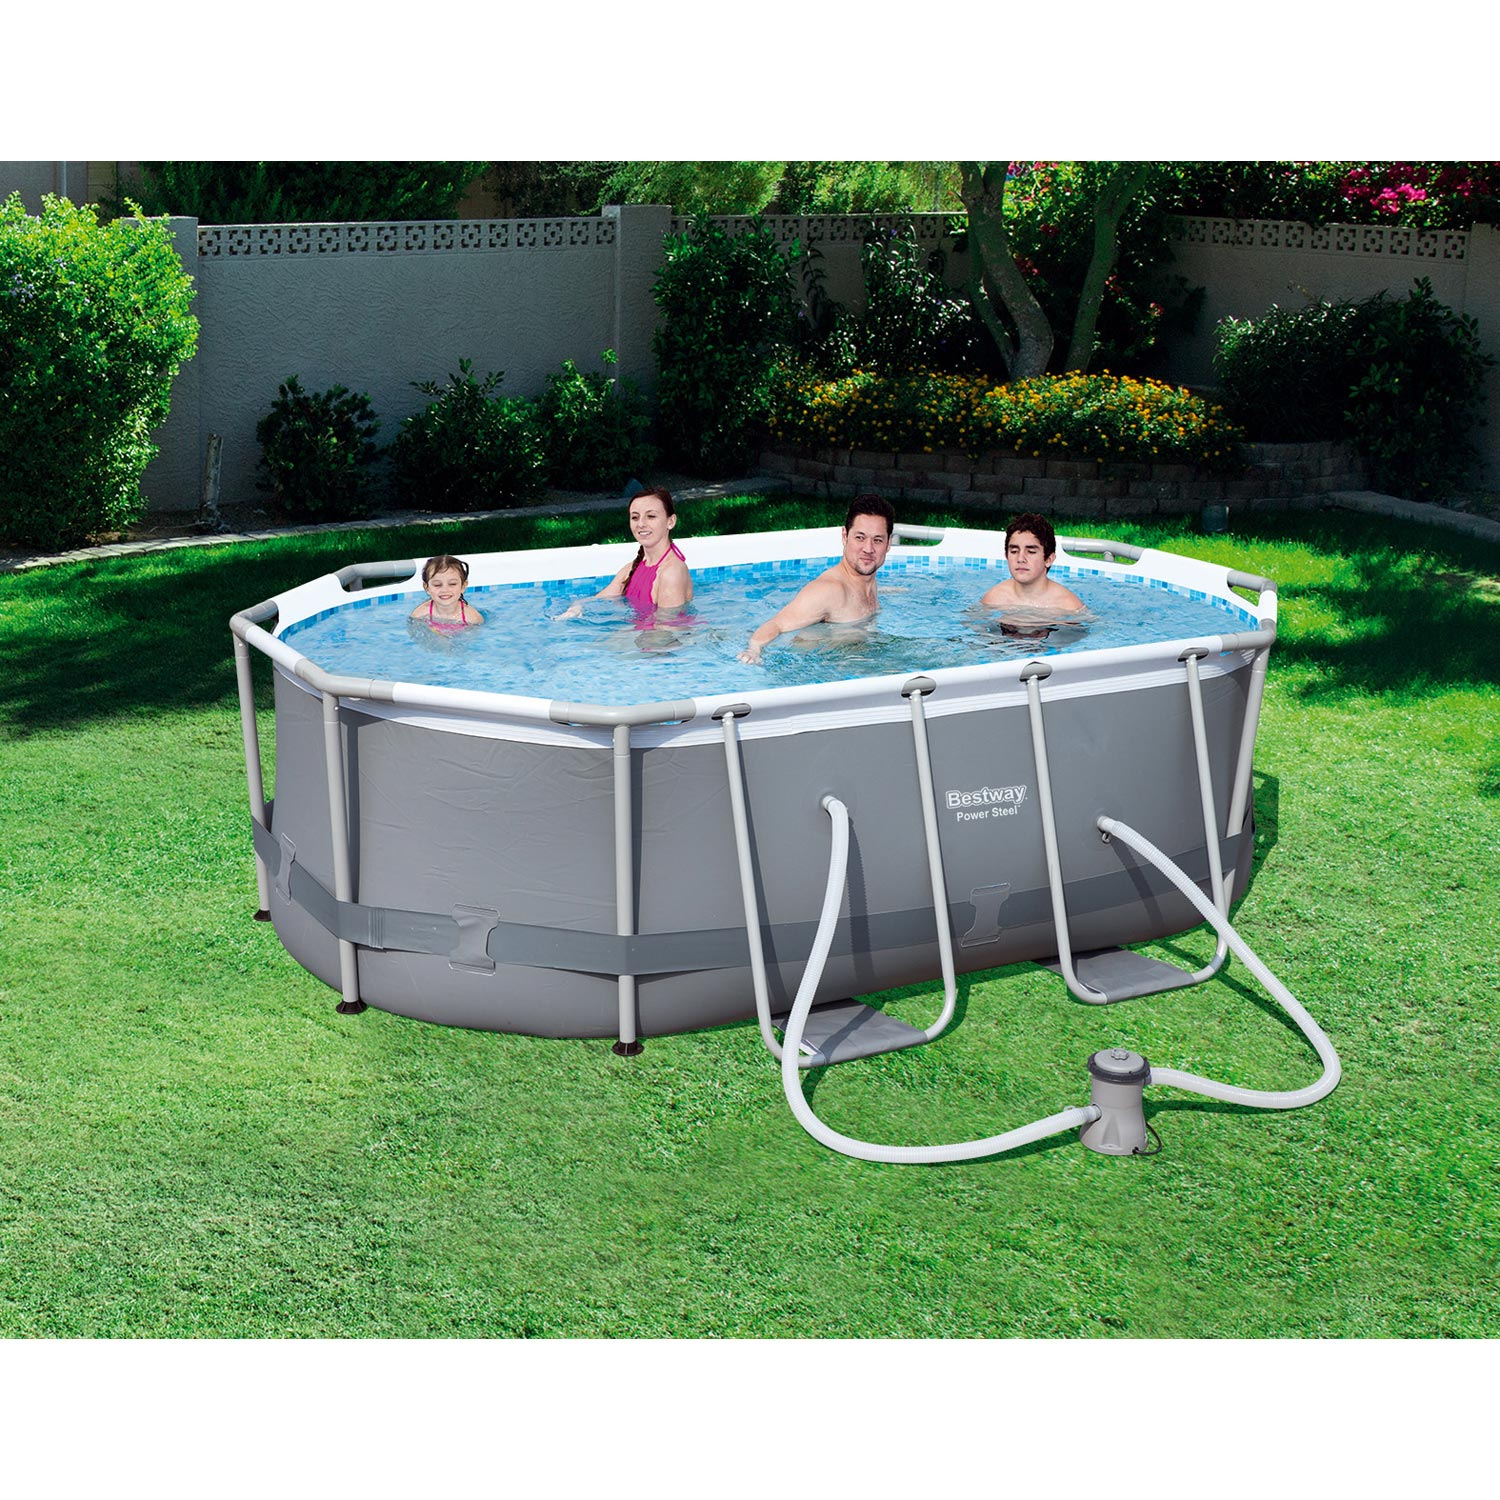 Piscine hors sol autoportante tubulaire bestway l 3 x l 2 for Piscine encastrable